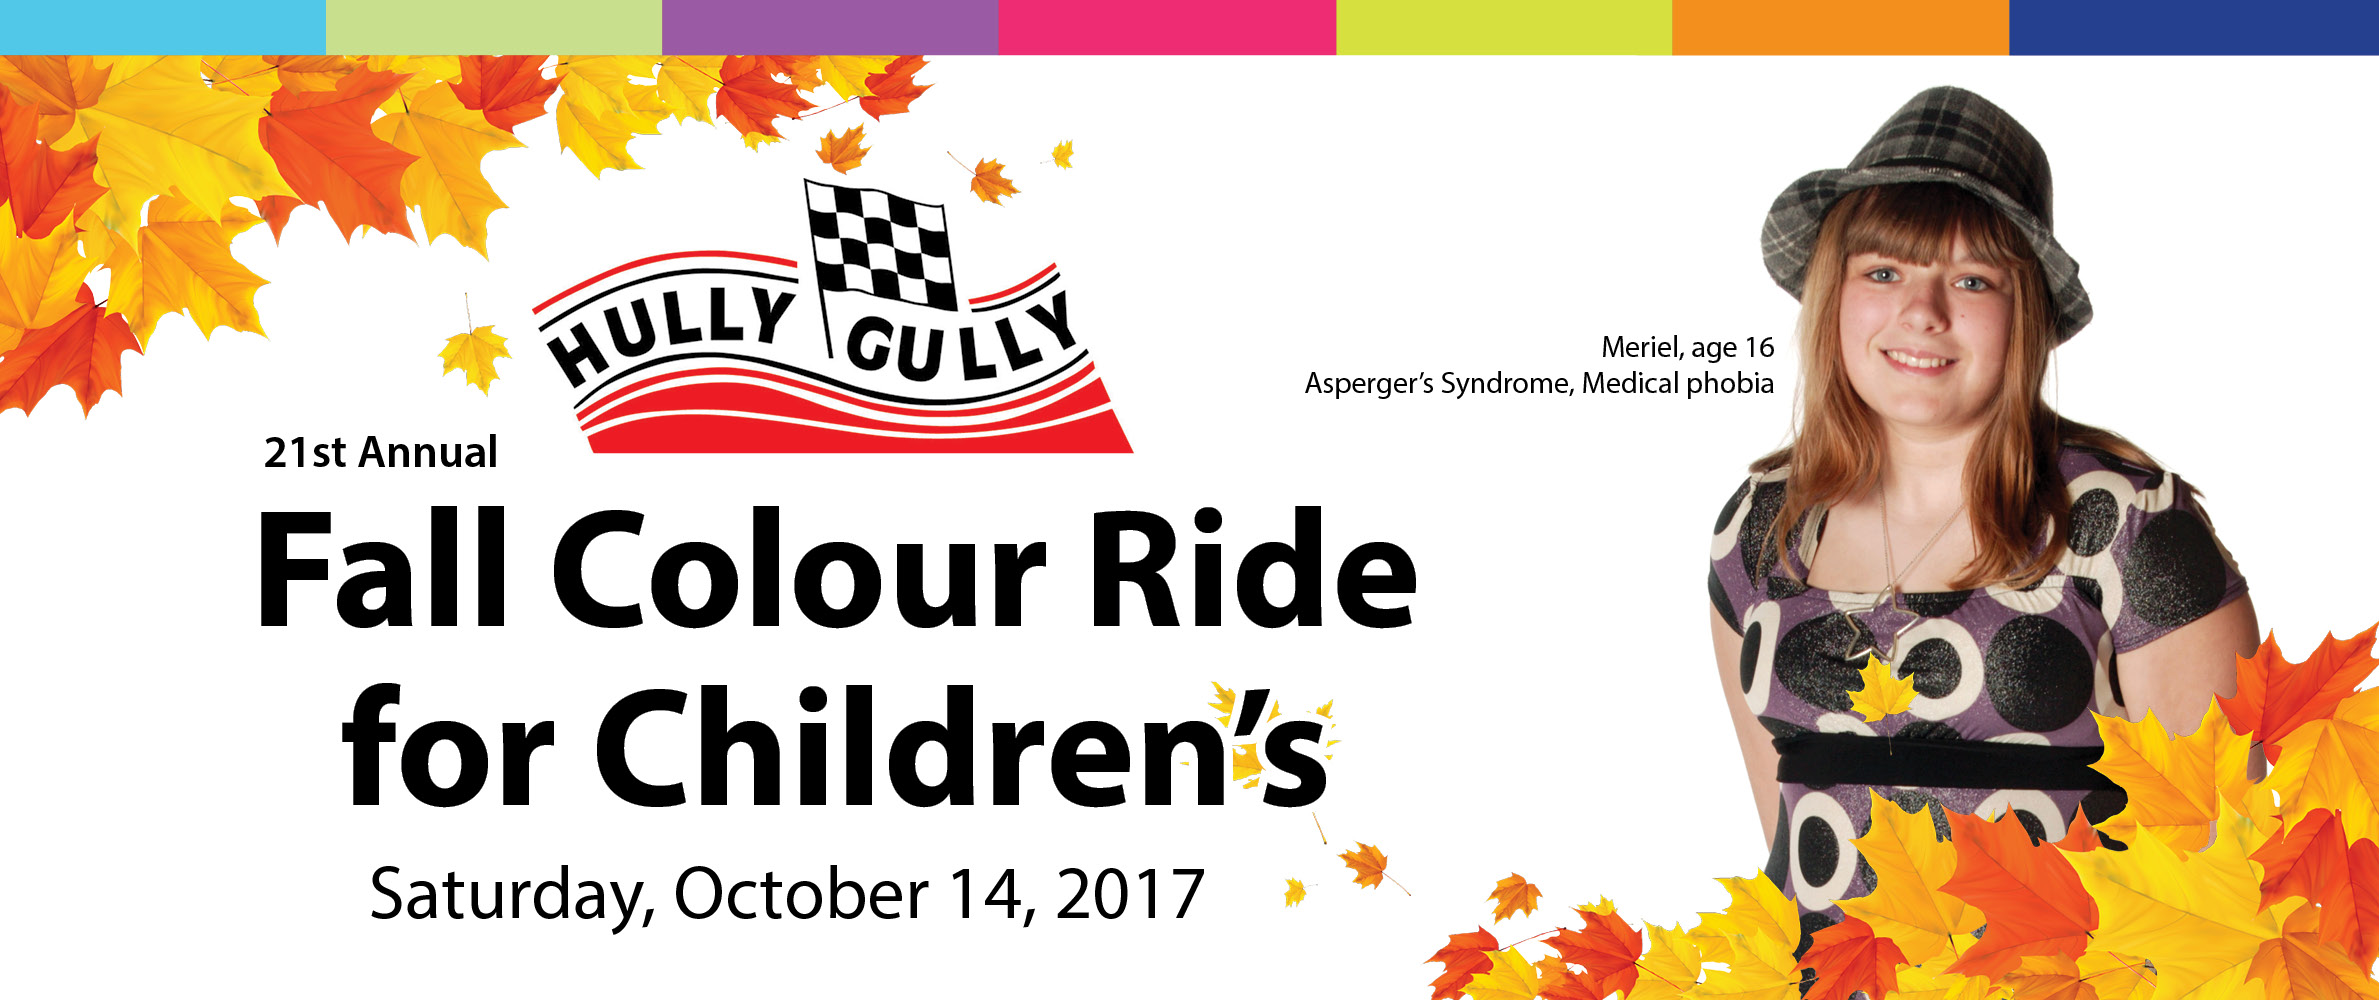 21st Annual Hully Gully Fall Colour Ride for Children's